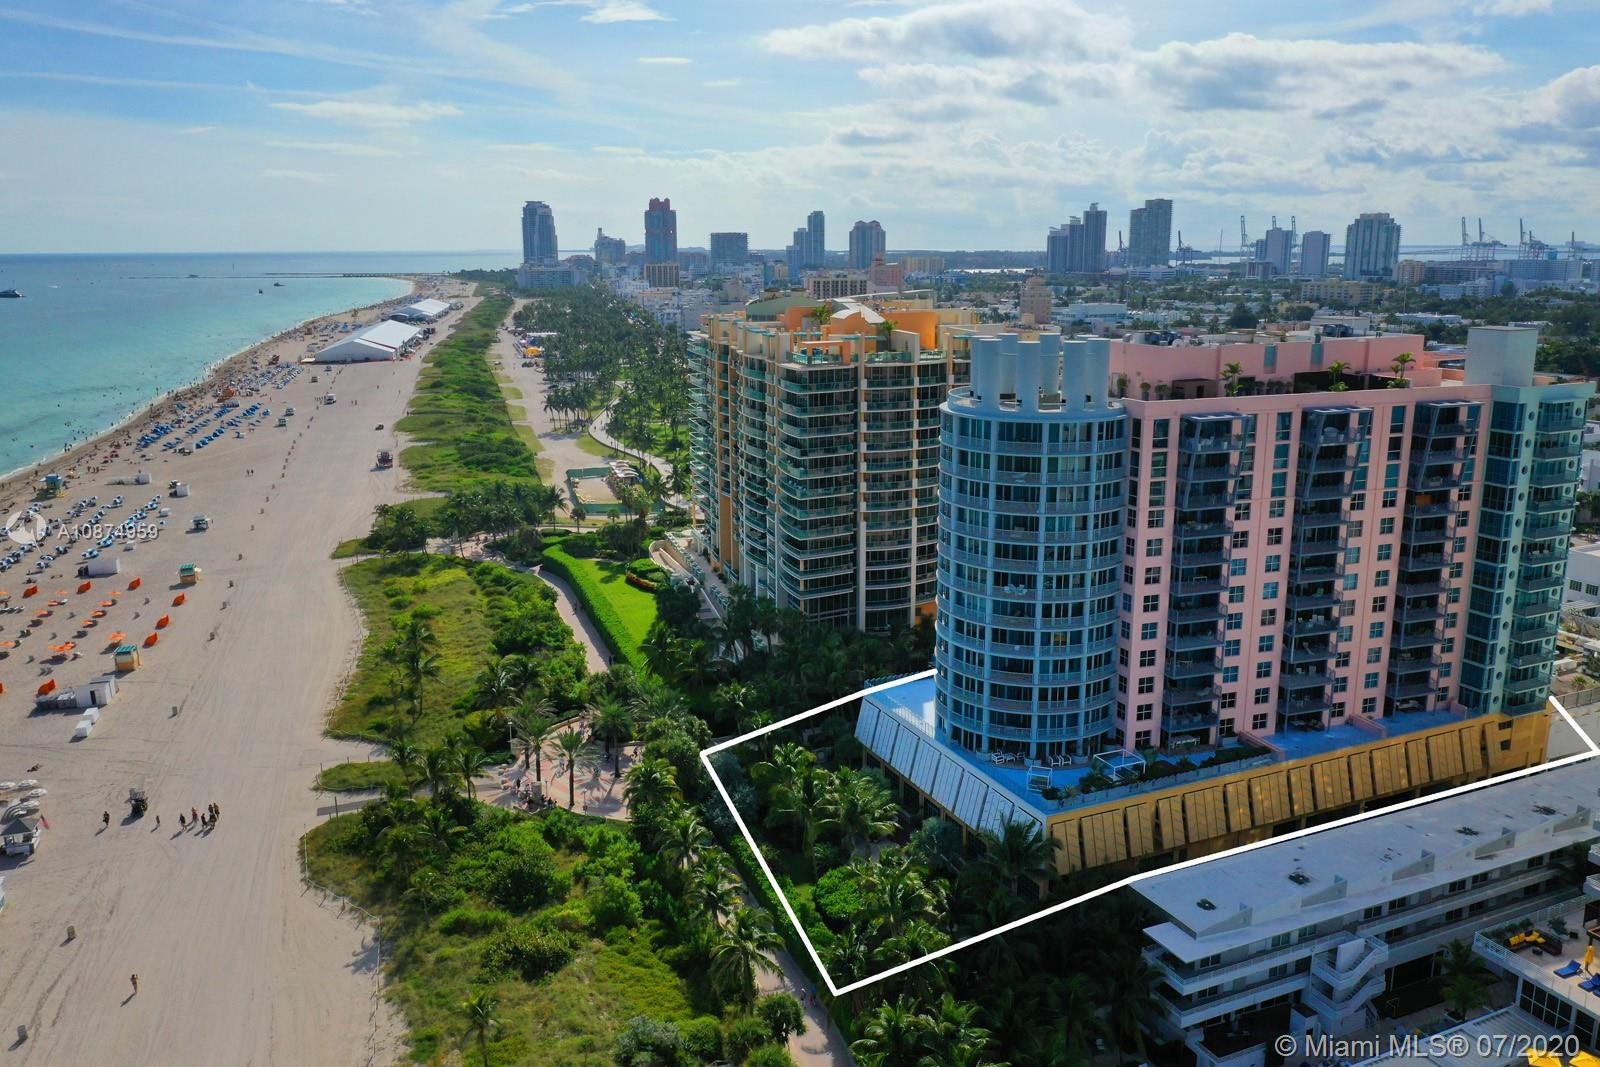 Wow!!! That's what you are going to say when you walk into this 1,740 Sq Ft South facing PH. The view will draw you out to your usable 11 X 19 terrace giving you views of the Ocean and downtown Miami. The sunrises and sunsets are memorable. The building was designed by world renowned architect Michael Graves as a 3 bedroom but was converted to 2 bed 3 baths giving you a large living/dining rm. This apartment is delivered tastefully furnished with an upscale beach feel. You have marble floors throughout, a renovated open kitchen with a breakfast bar, entry foyer, laundry rm and walk in closet. All this and the perfect location. On ocean Dr, walking distance to Lincoln Rd, world class shopping and restaurants. Call to make an appt if your looking for the PH lifestyle.